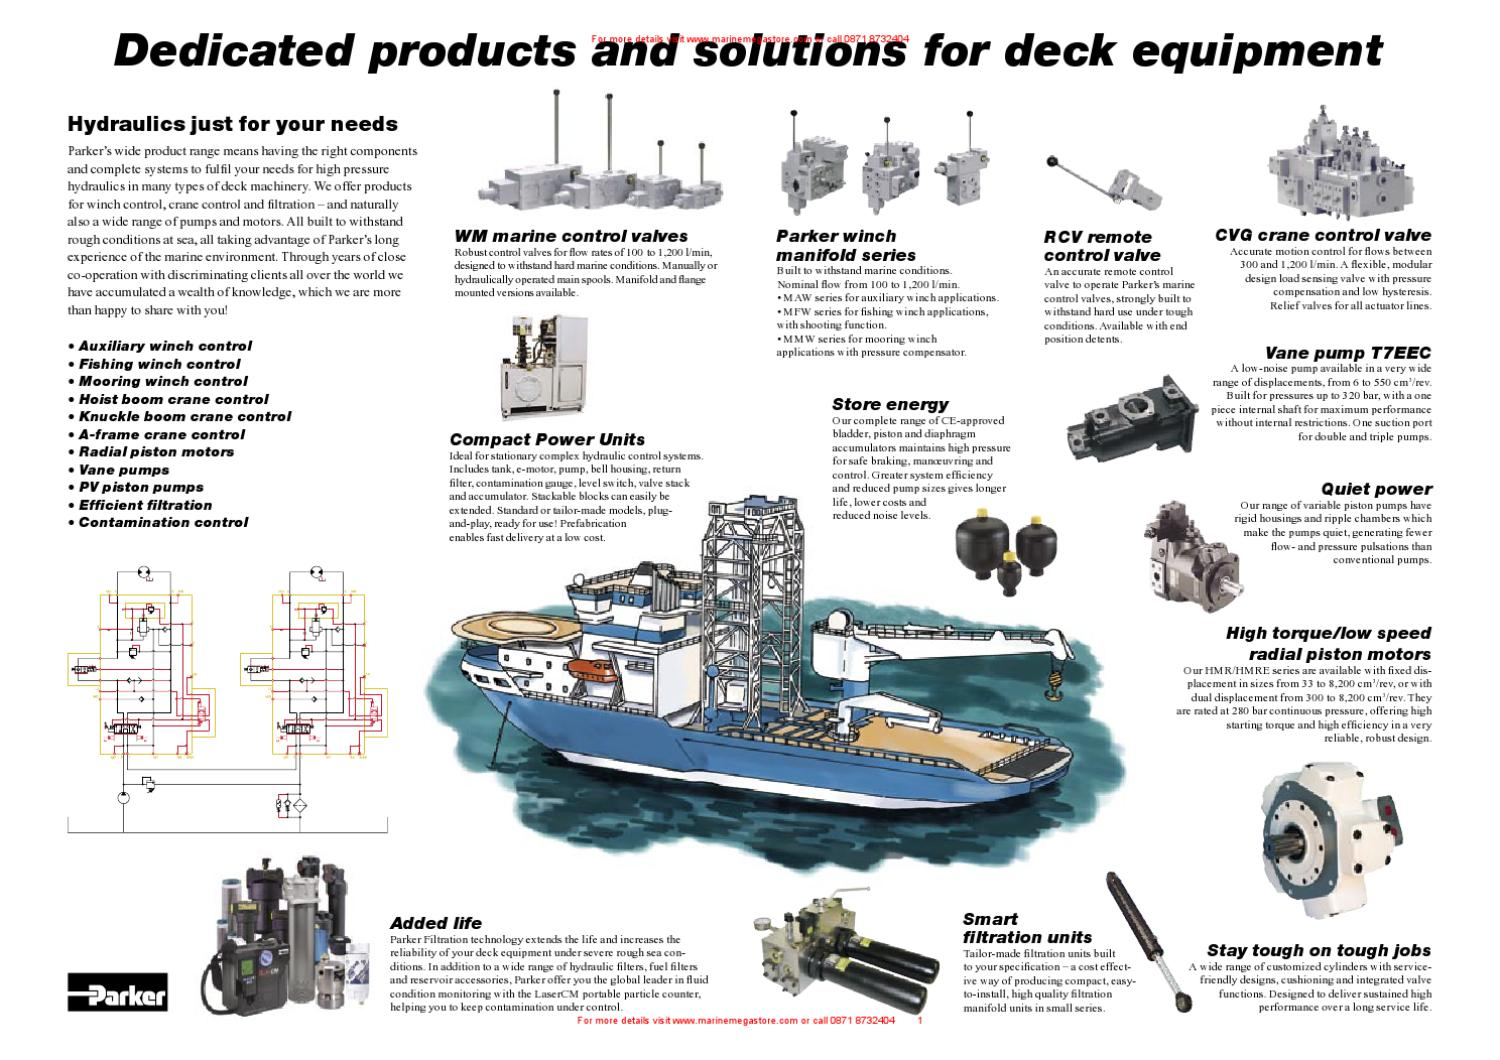 Parker Hannifin Dedicated Products And Solutions For Deck By Marine Fuel Filter Mega Store Ltd Issuu